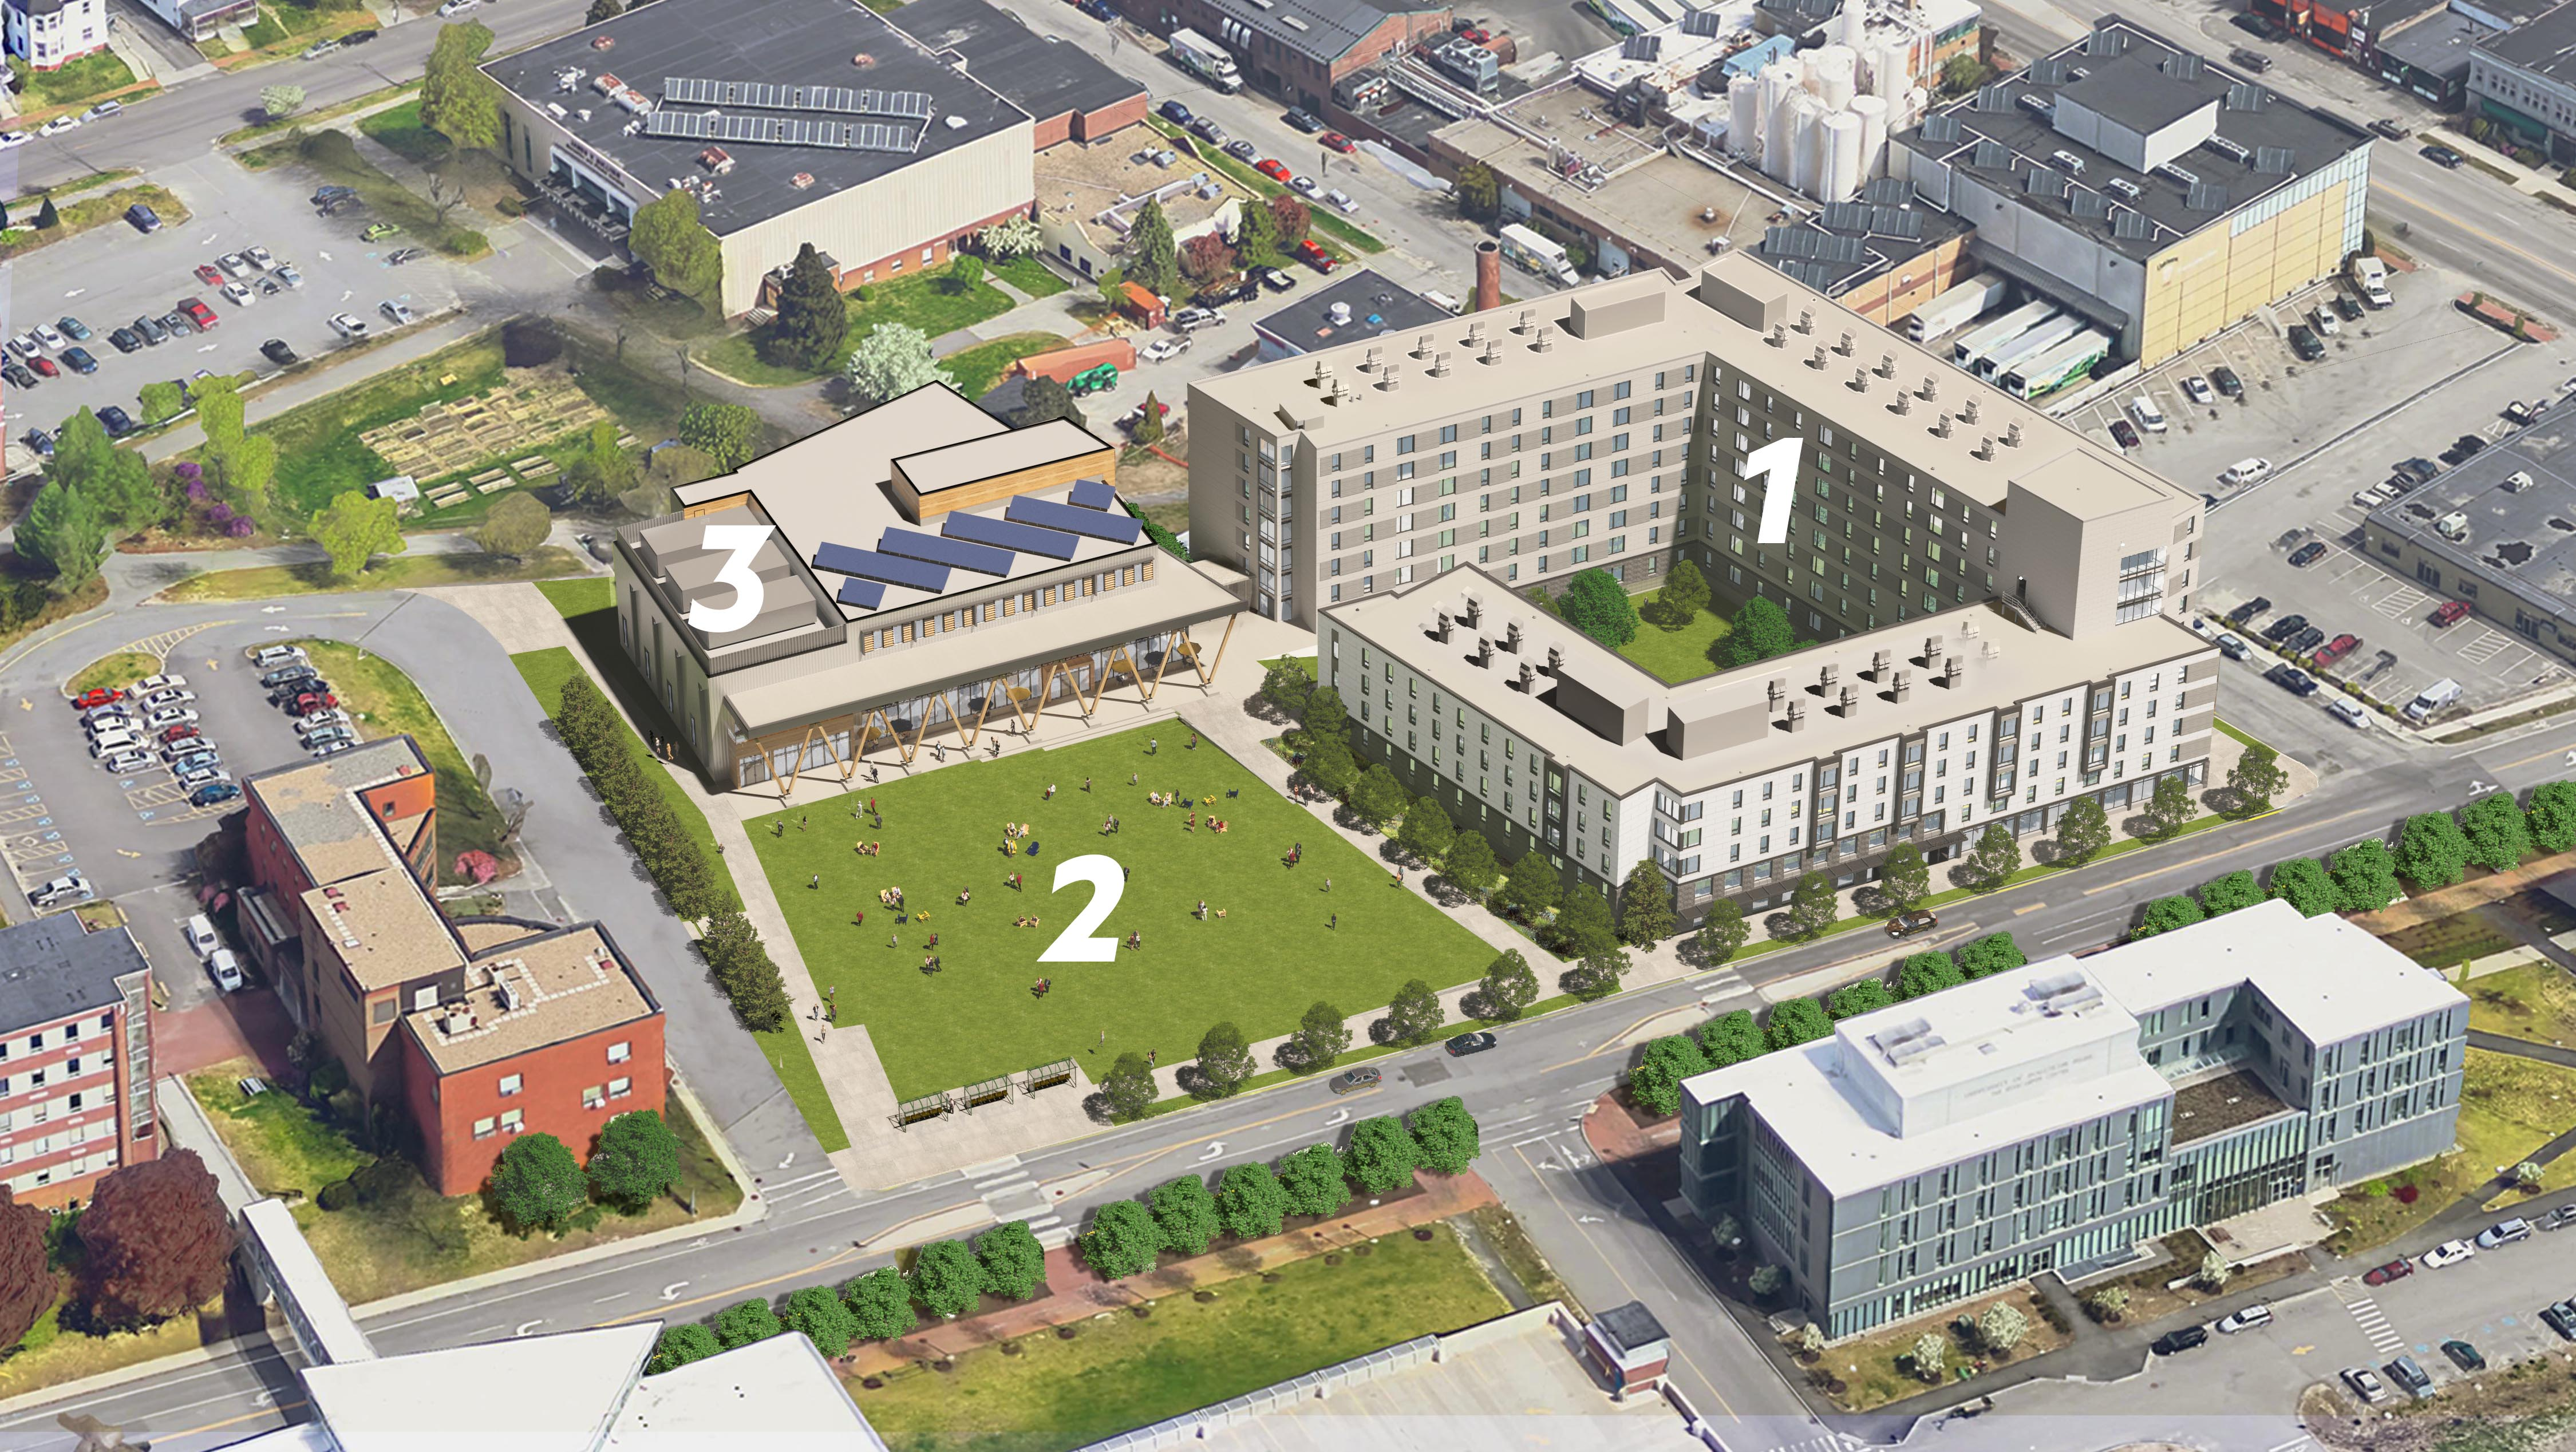 An annotated bird's eye view of the Portland Campus Development Project